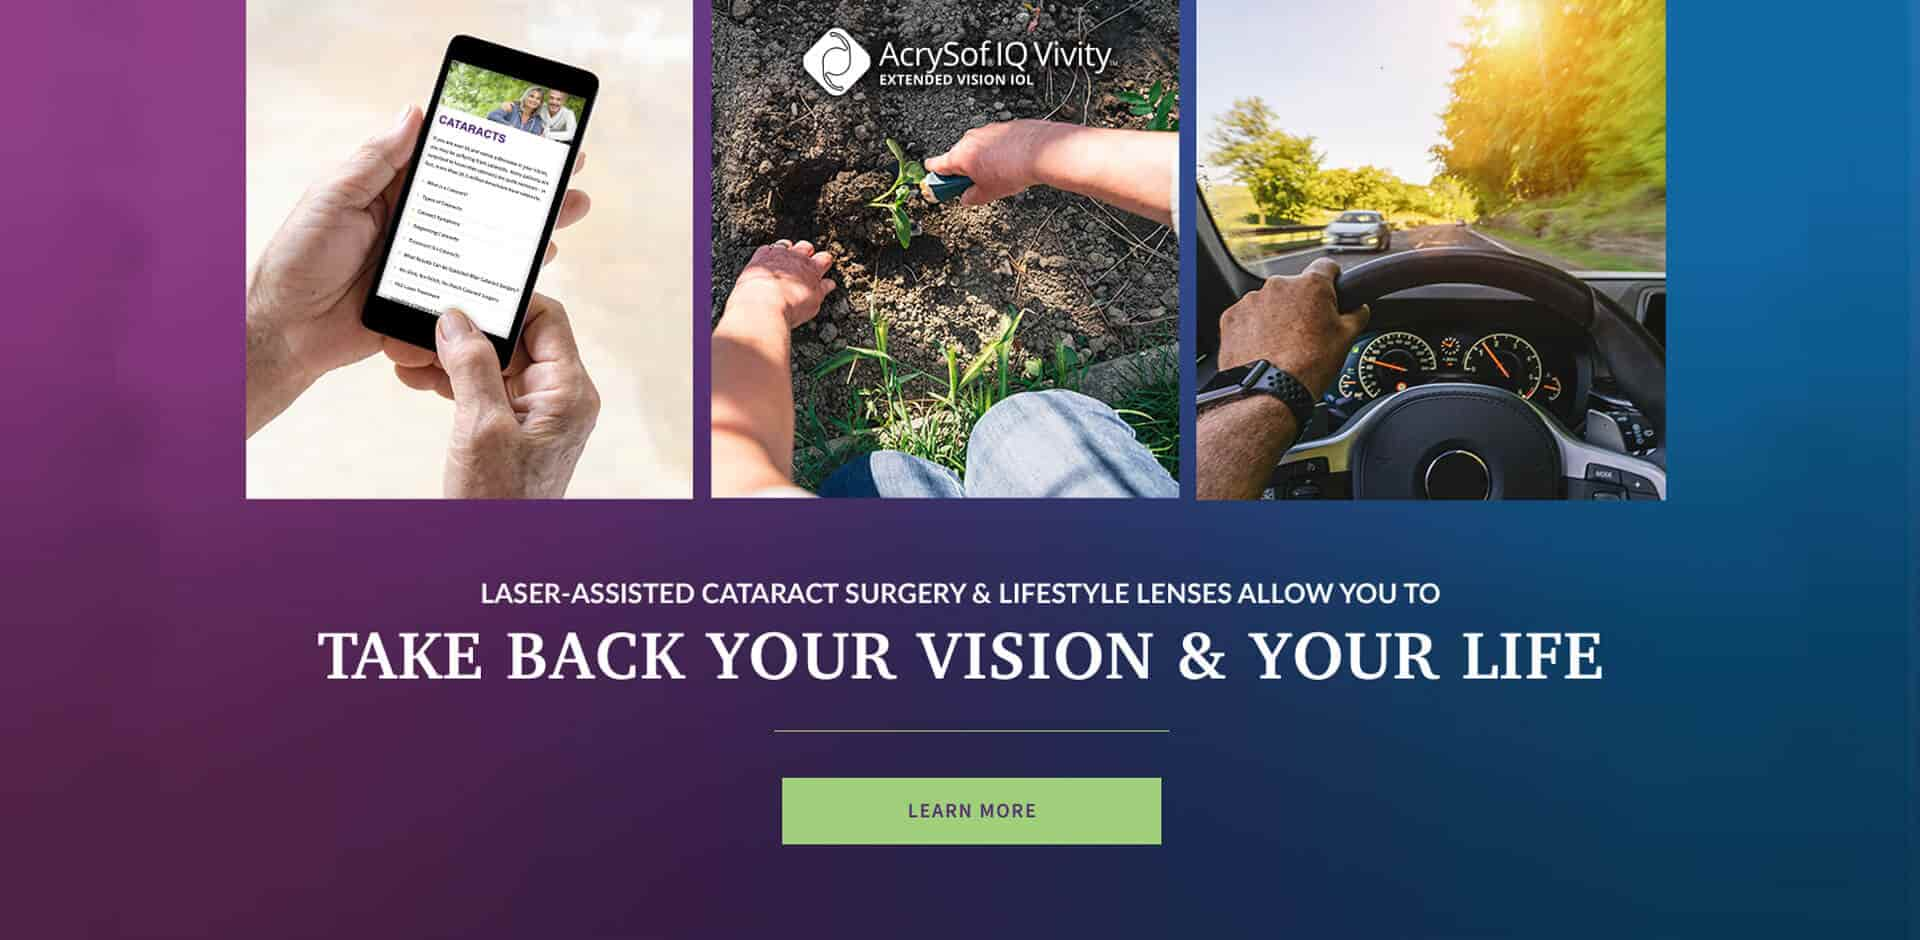 Take back your vision and your life - learn more about the Vivity IOL